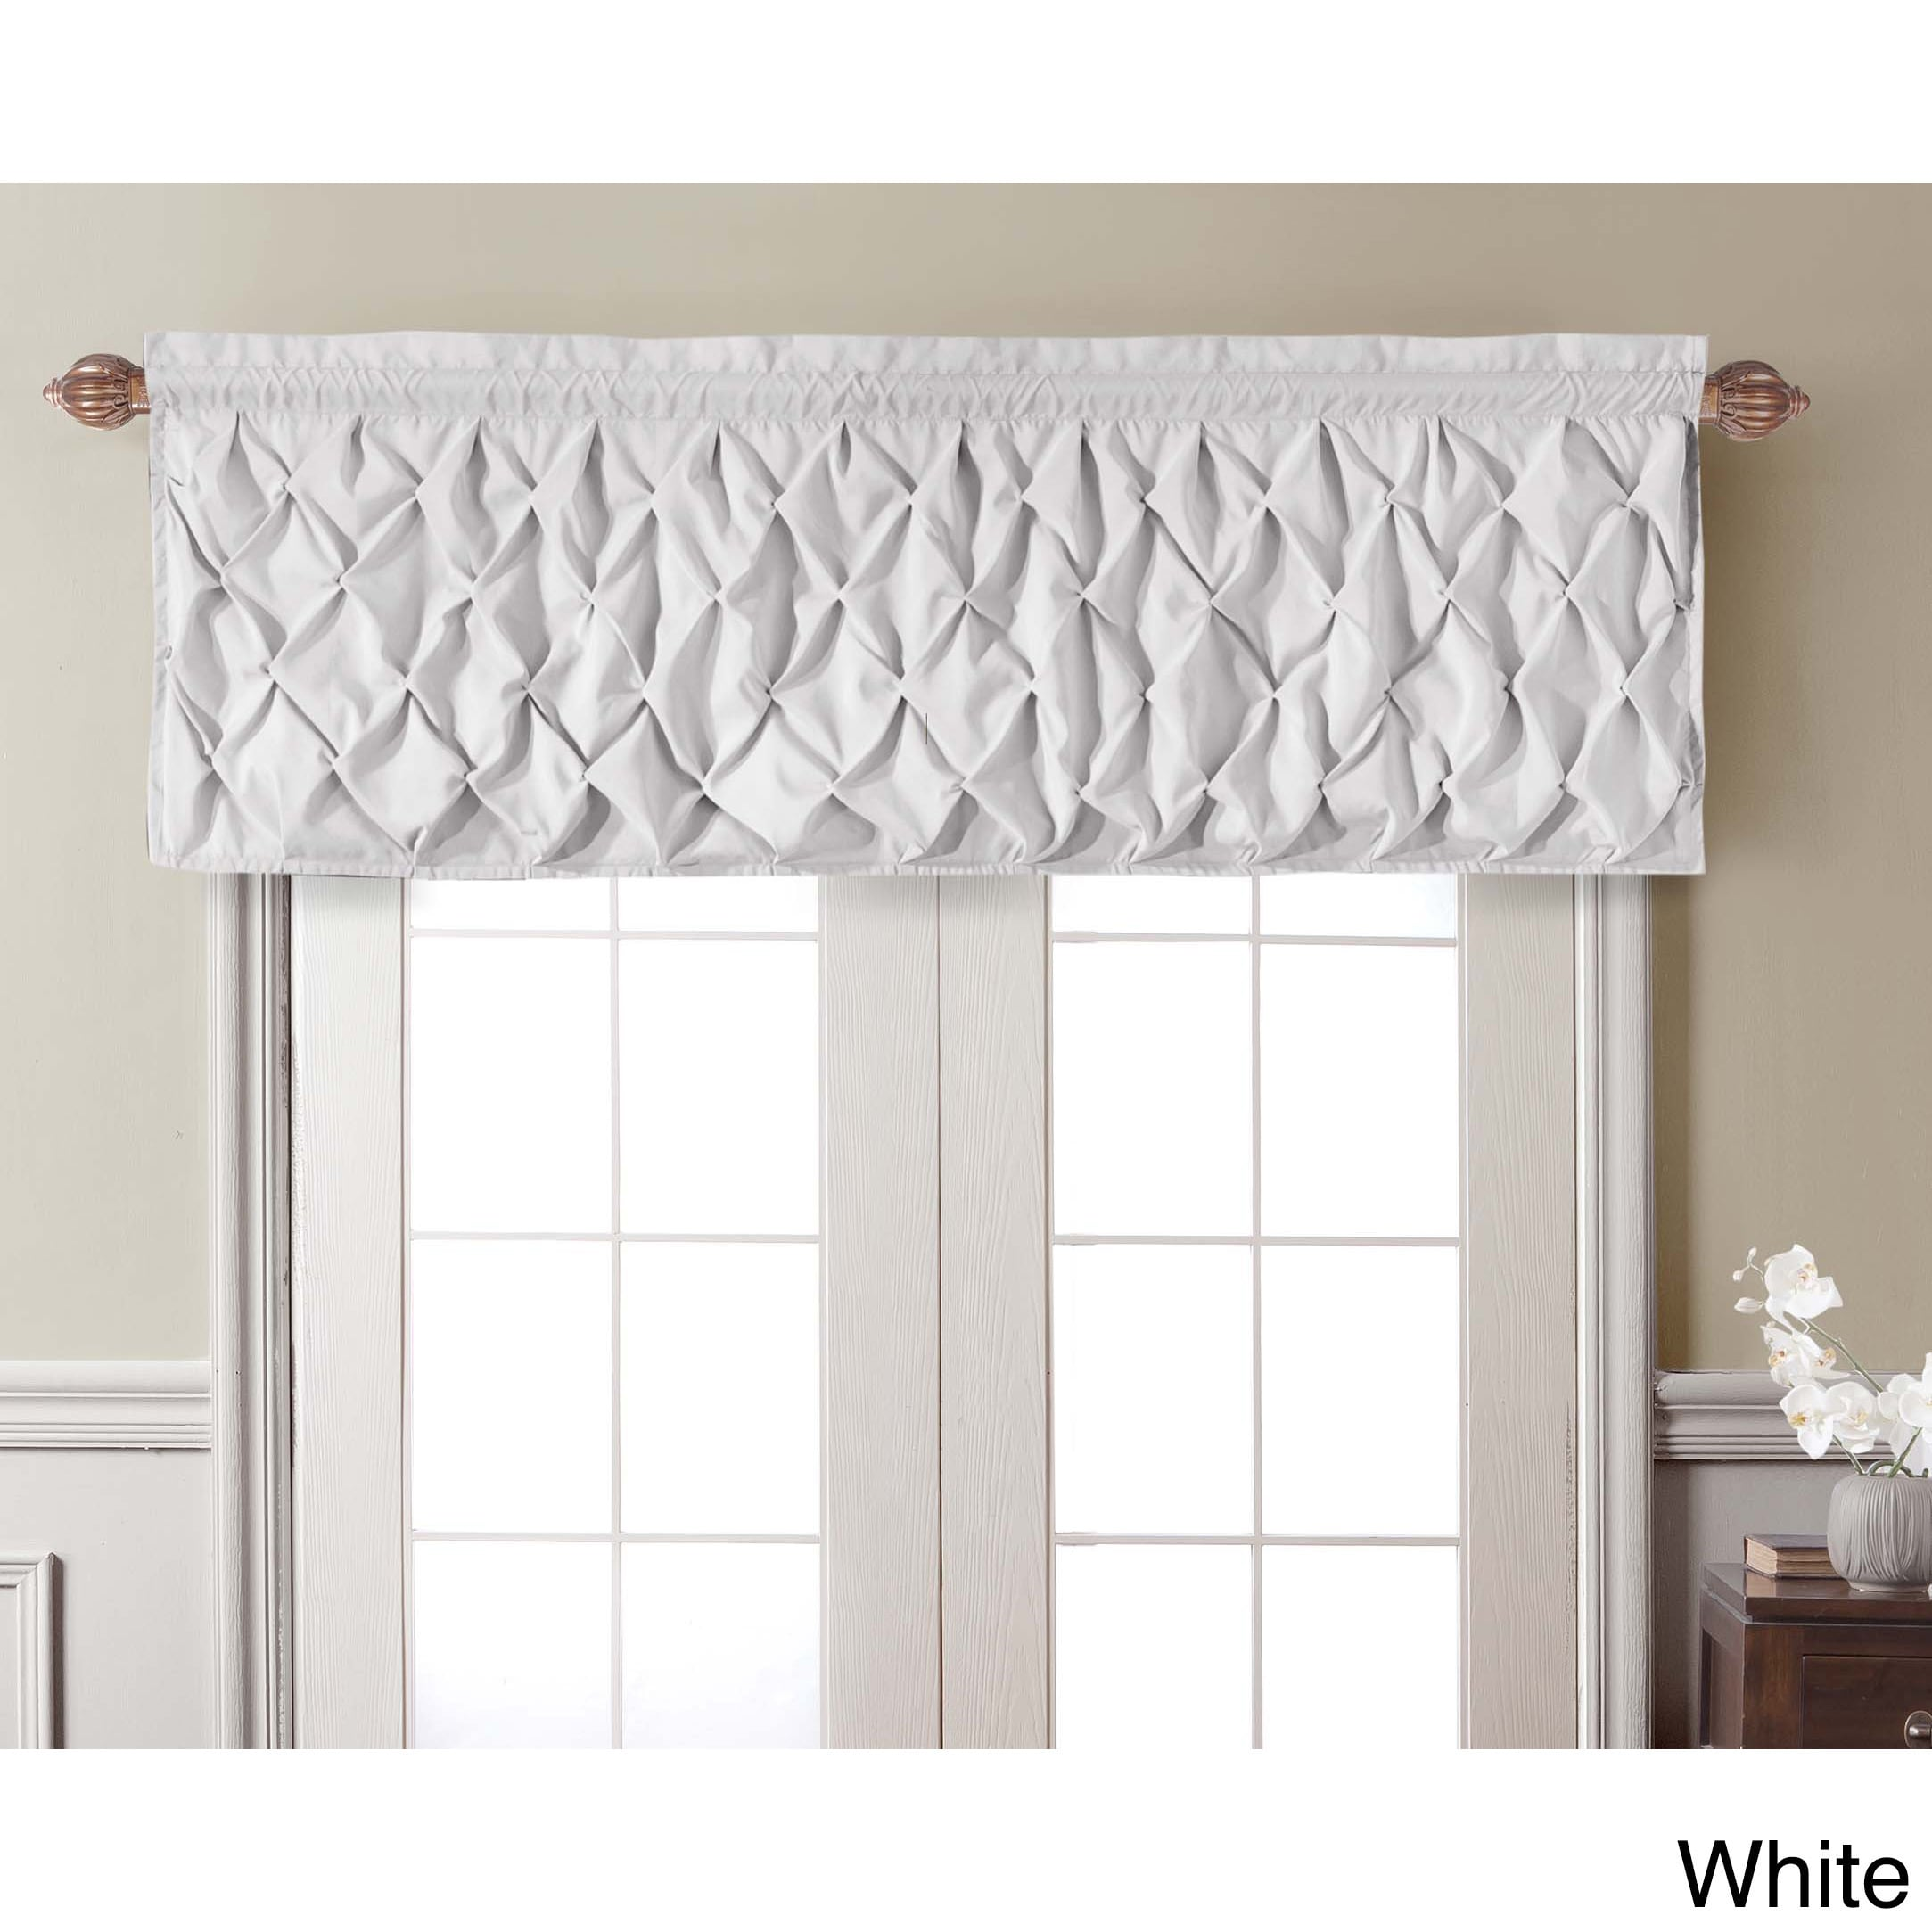 large lilac valances damask gray rod antique white traditions designs and with navy pocket carousel accent trim valance coordinating window